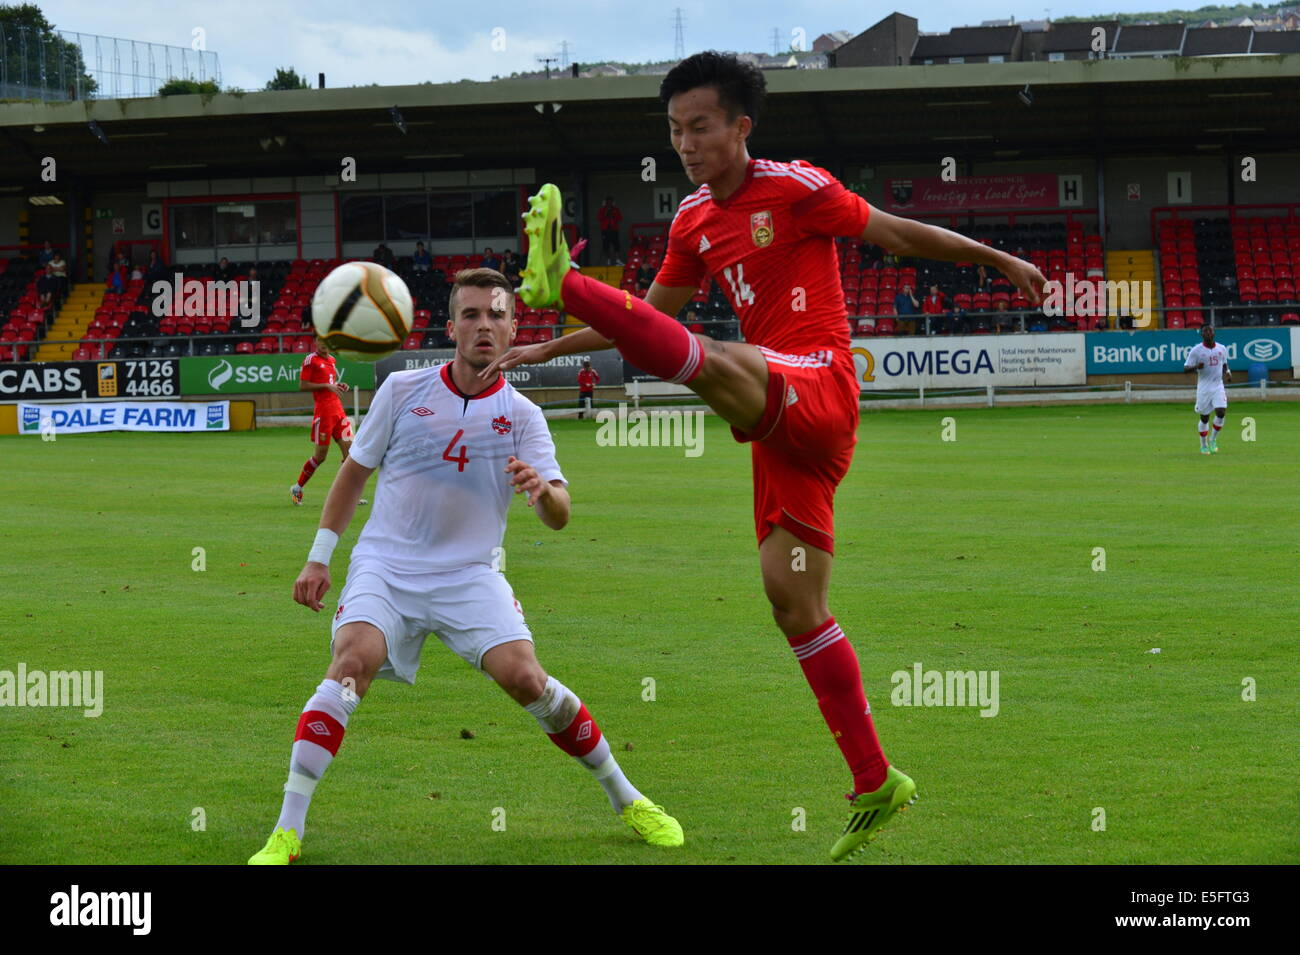 Derry, Londonderry, Northern Ireland. 30th July, 2014. Milk Cup Elite Section, Canada v China. Canada's Alexander - Stock Image